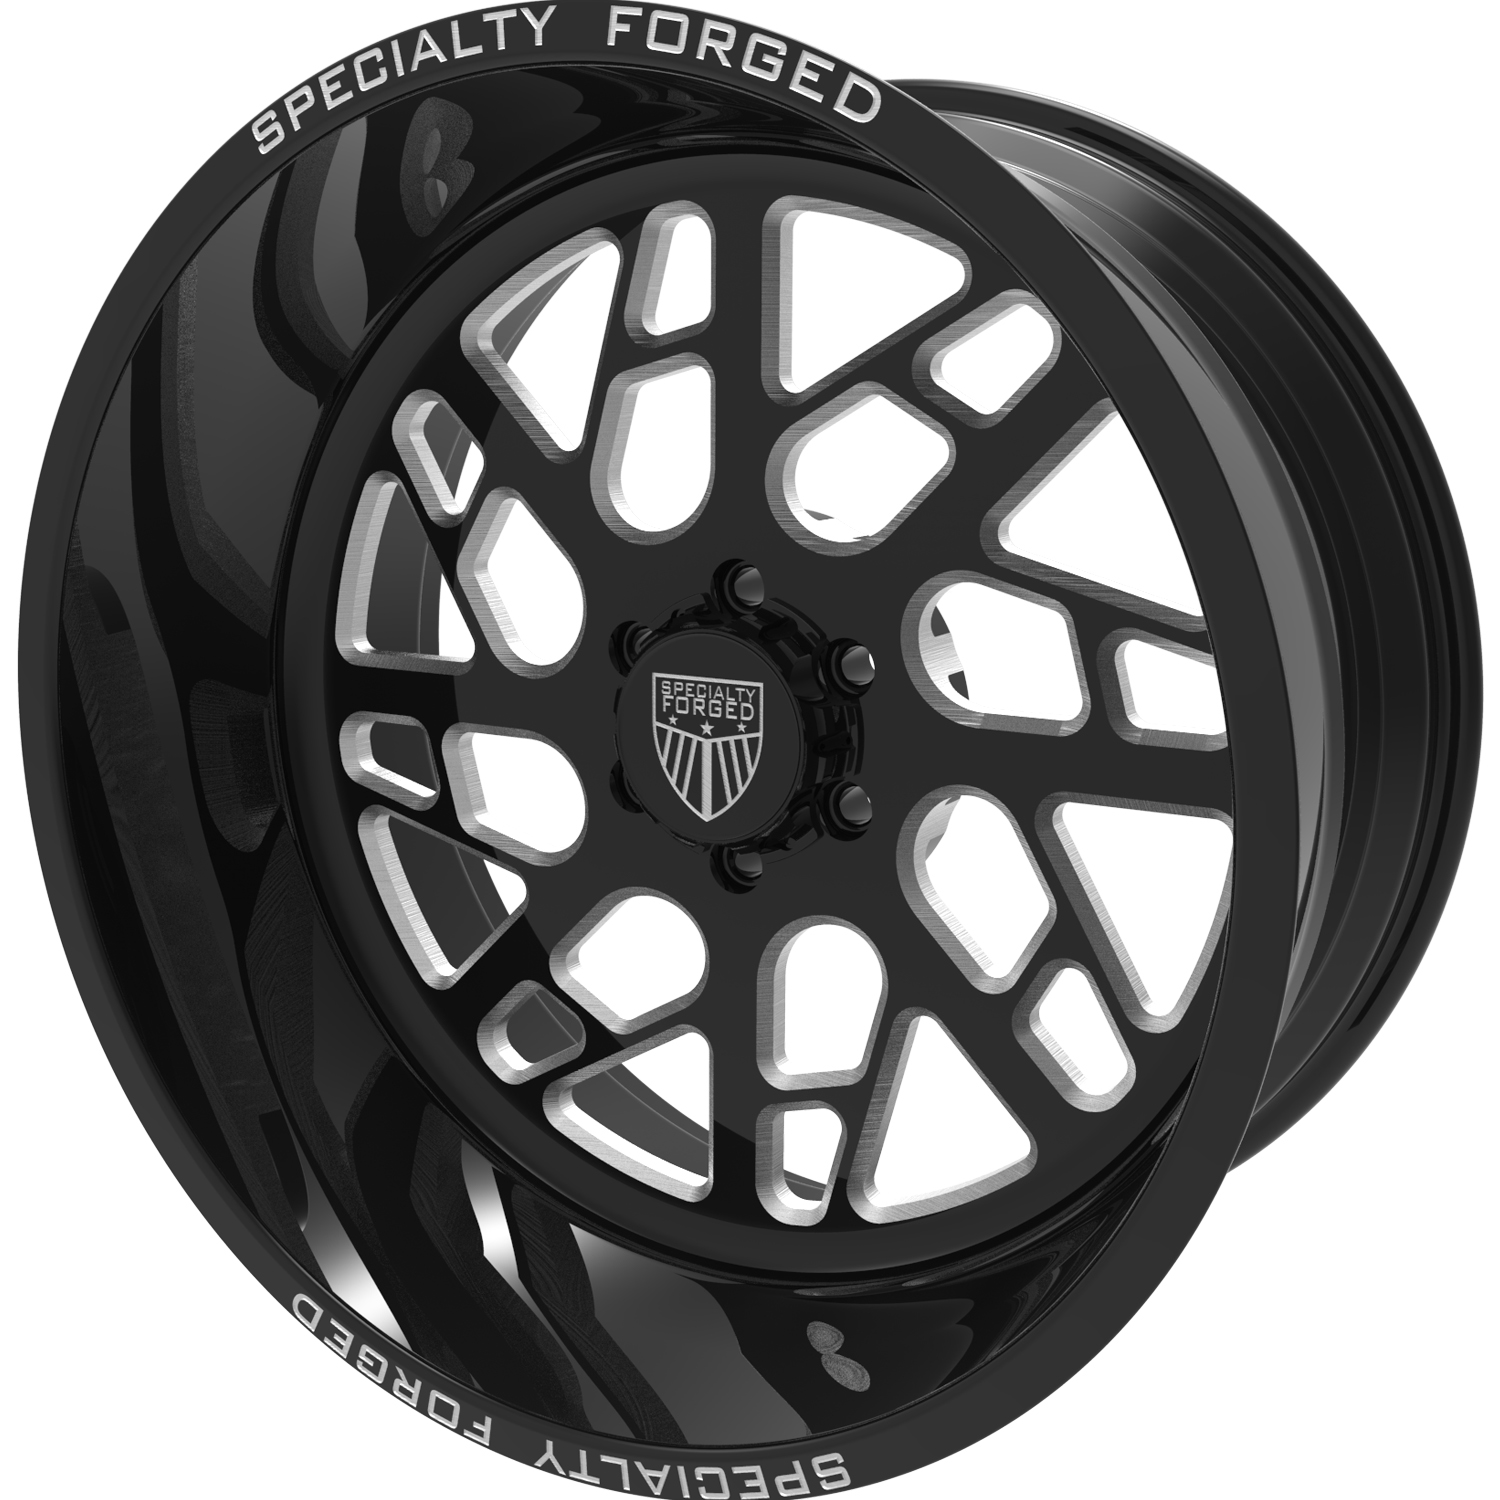 Specialty Forged SF008 20x14  76mm | SF008 2014 6x550 BM